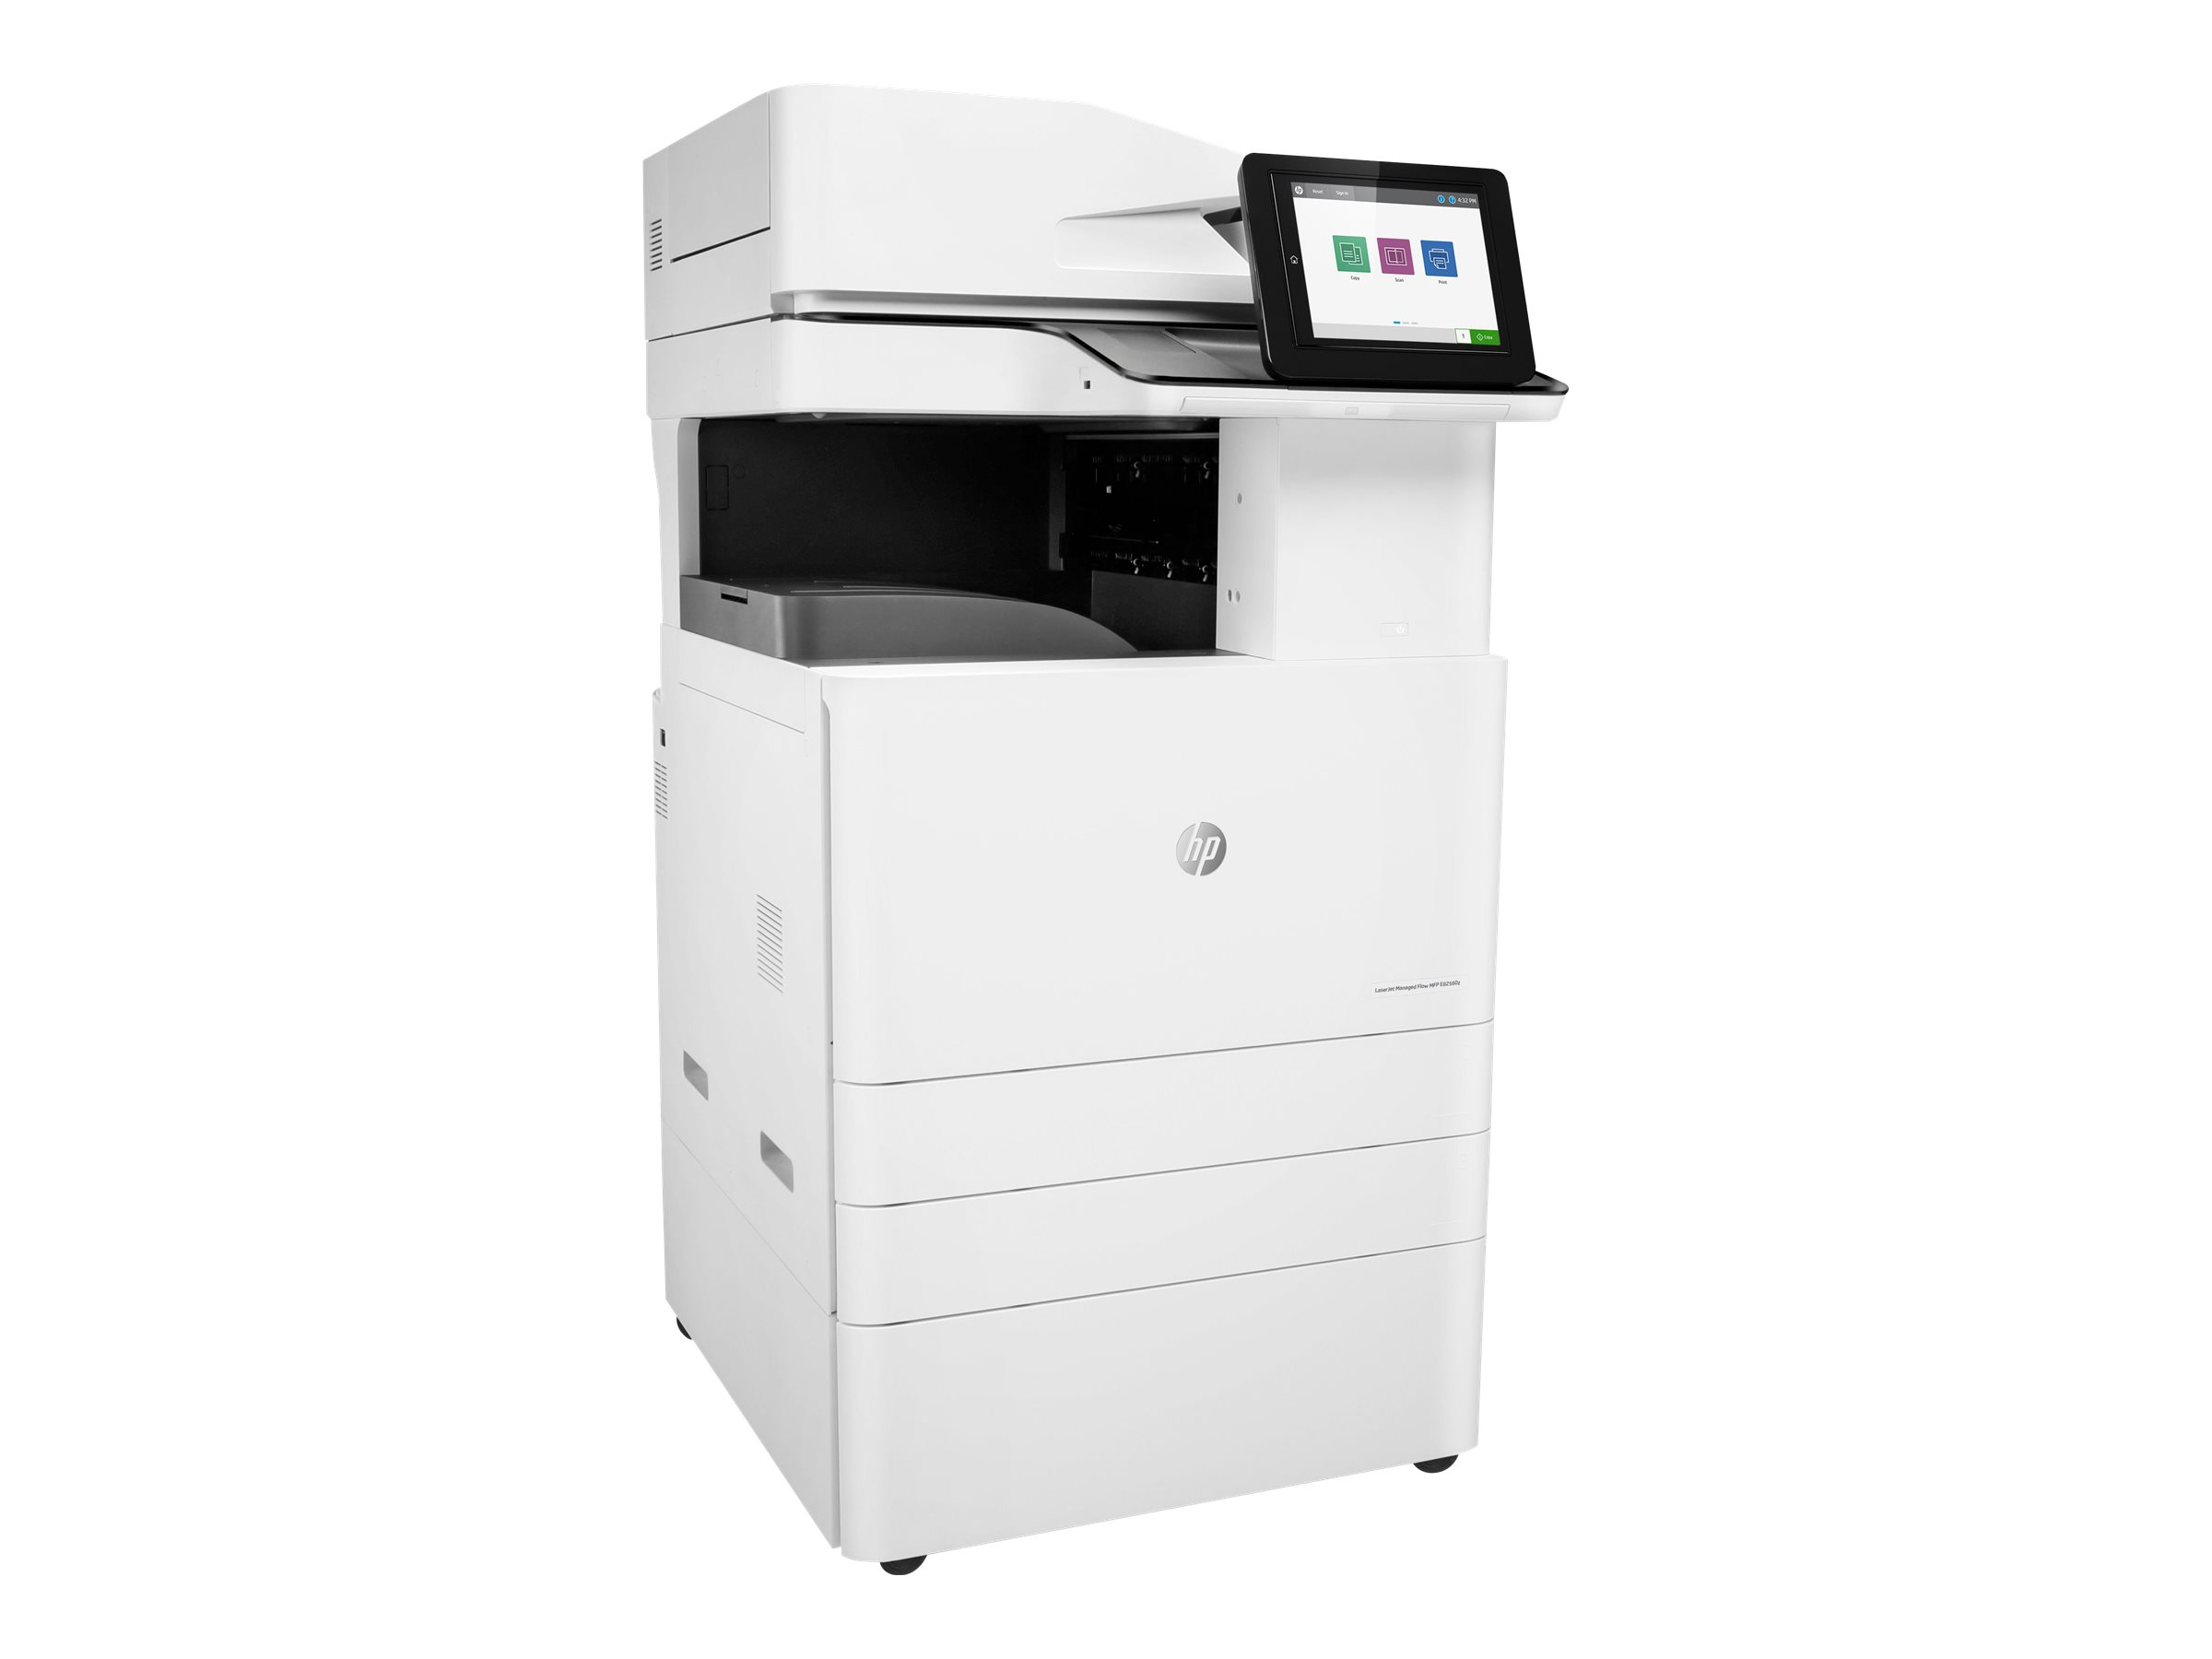 Copieur LaserJet Managed Flow MFP HP E82560z - vitesse 60ppm vue 3/4 gauche